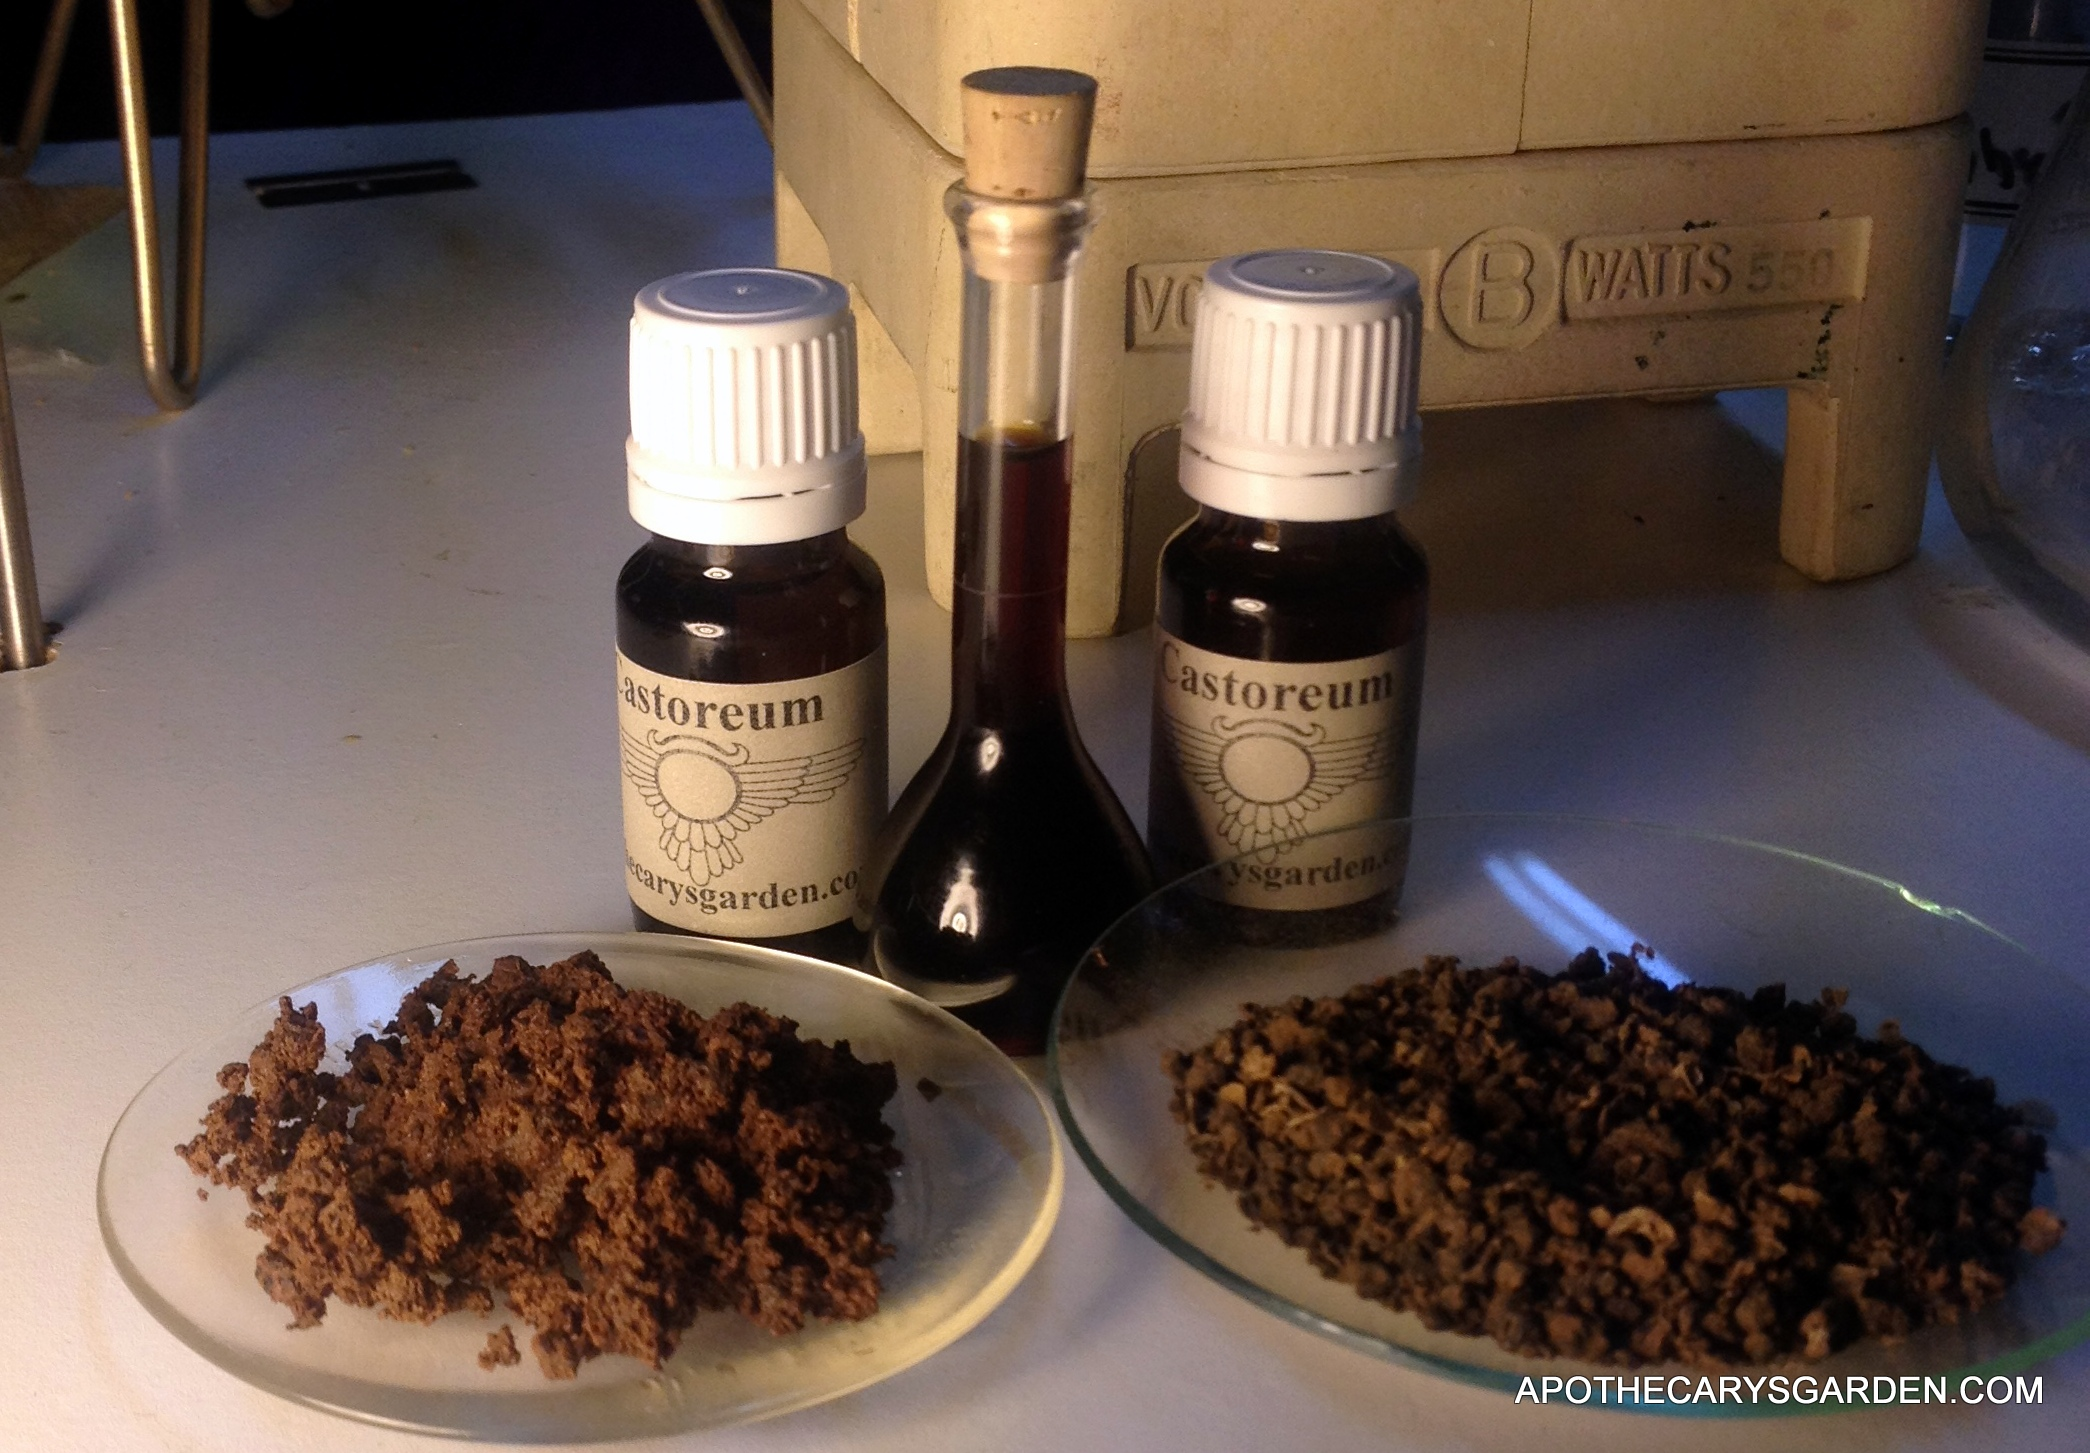 Castoreum, tincture of Castor, dried granules on the right, ground and preserved in alcohol on the left.